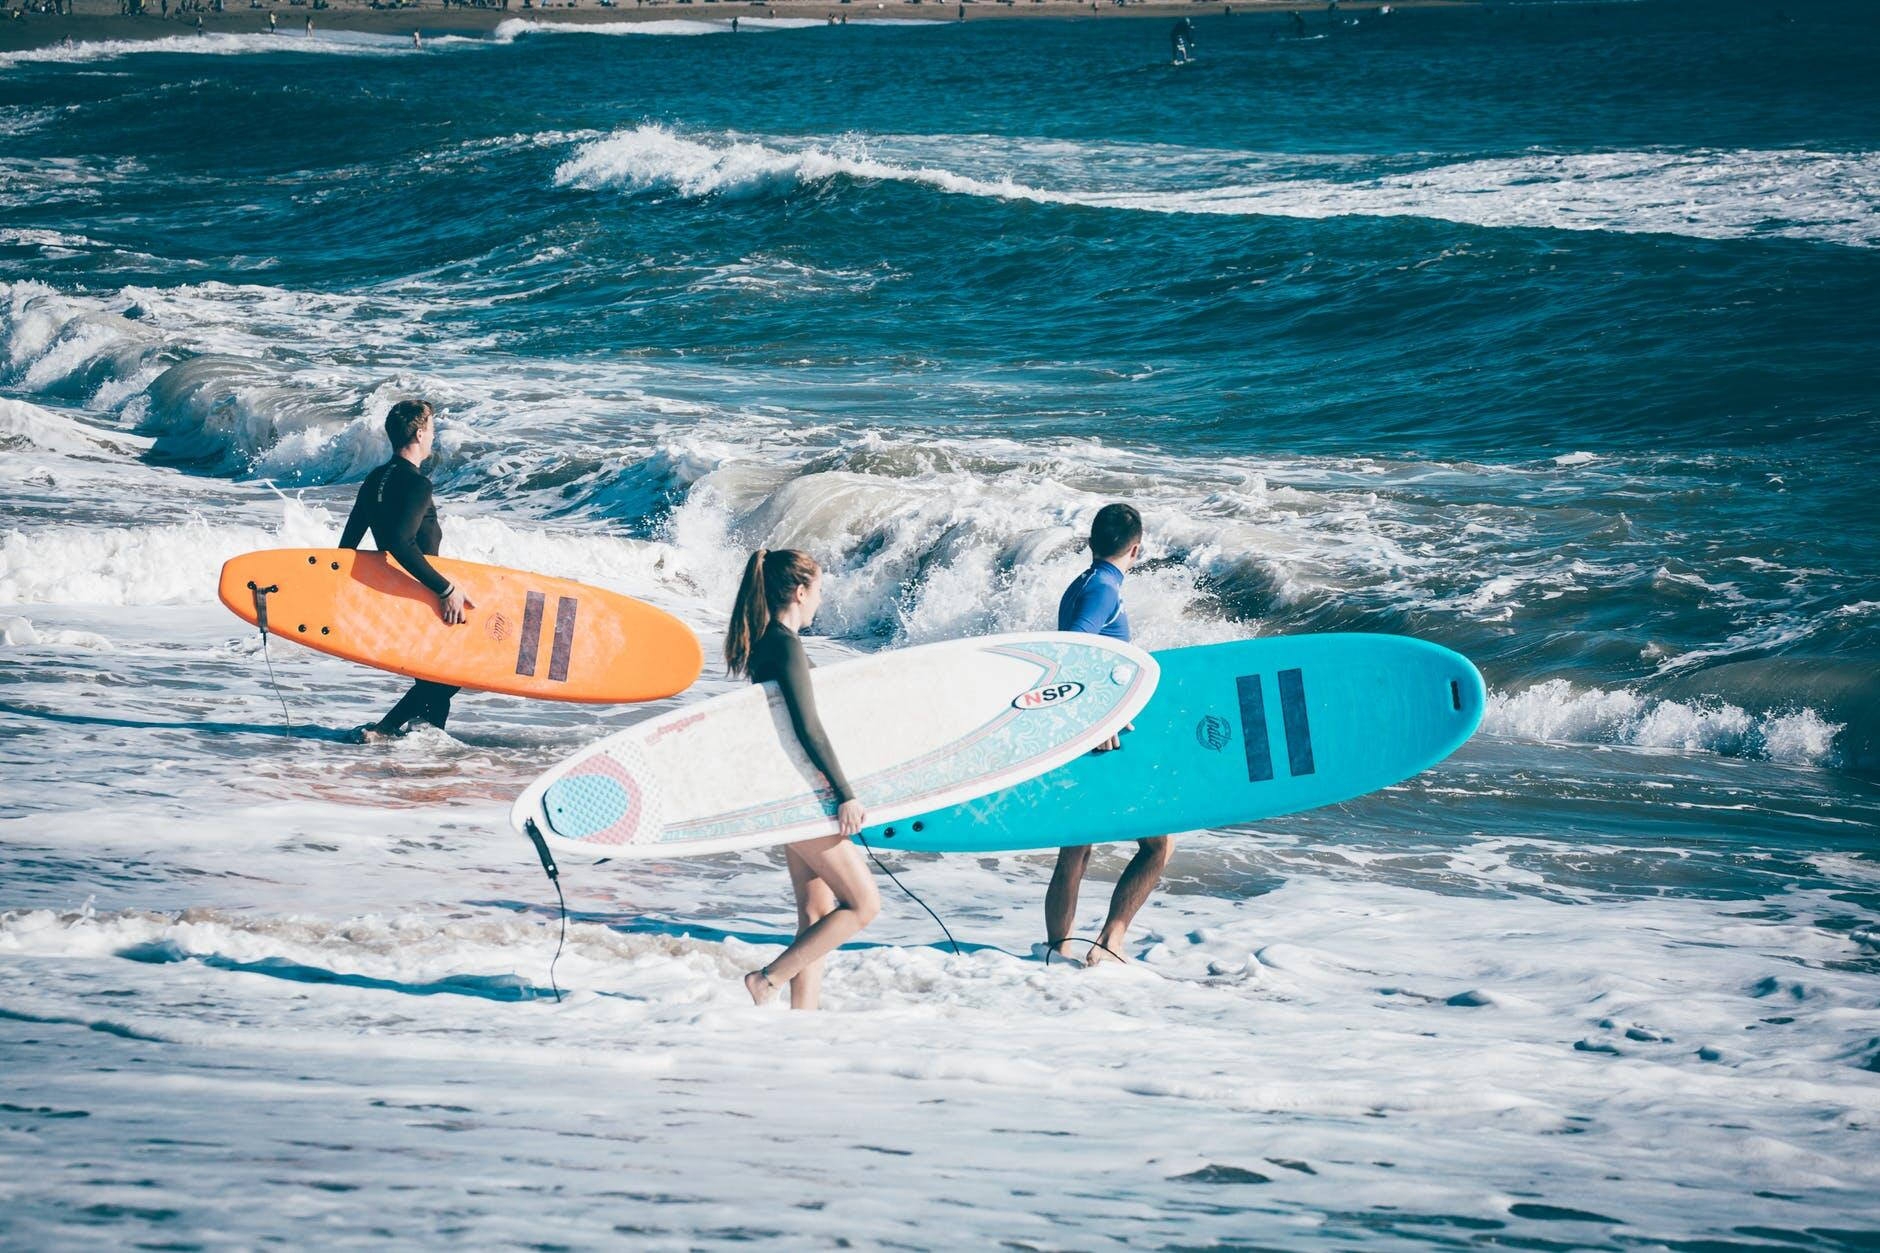 Cluster of beach-goers with surfboards